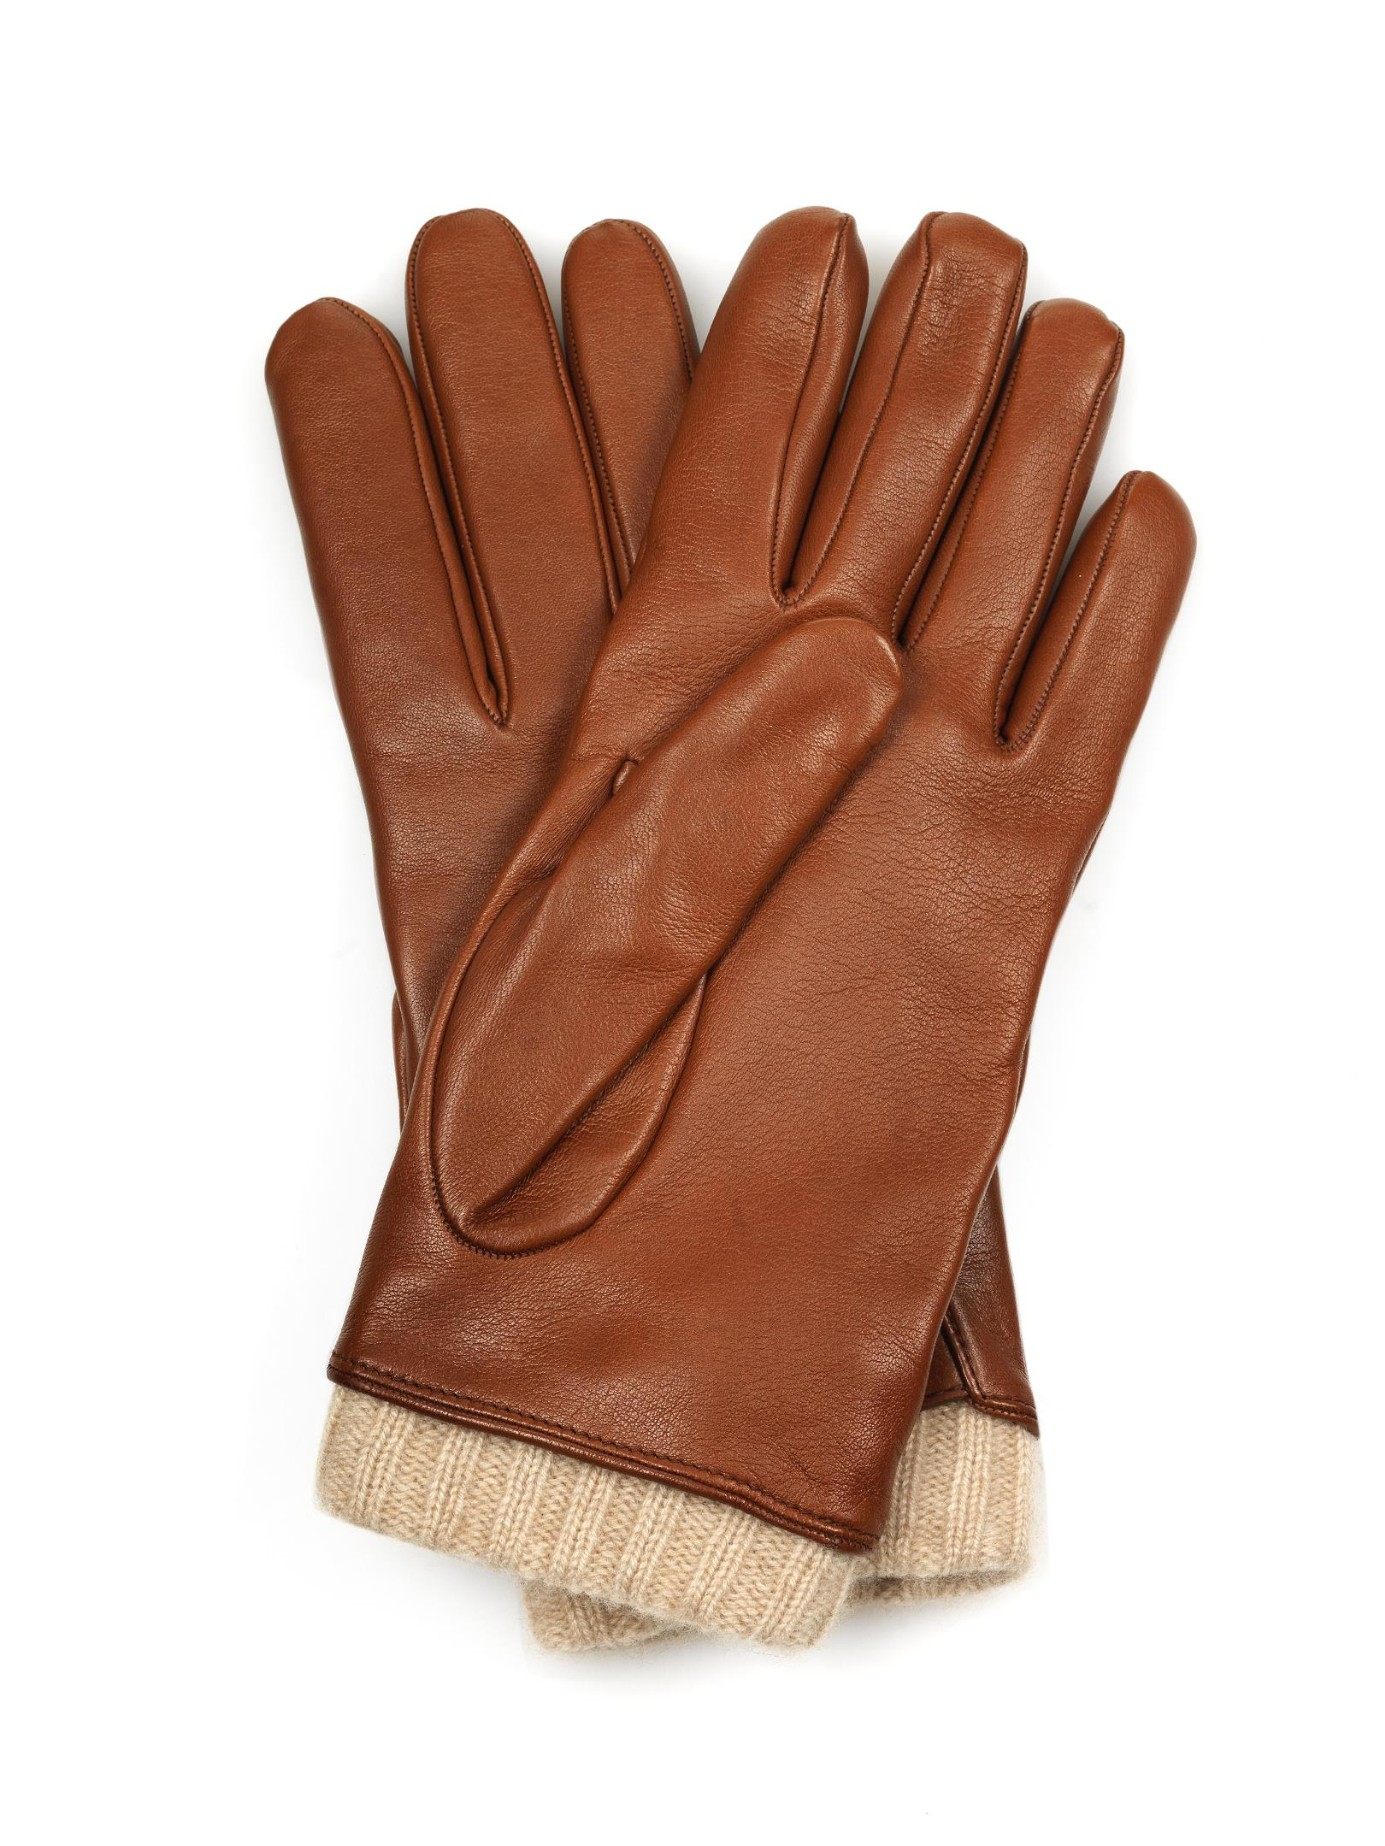 Tiger leather driving gloves - Gallery